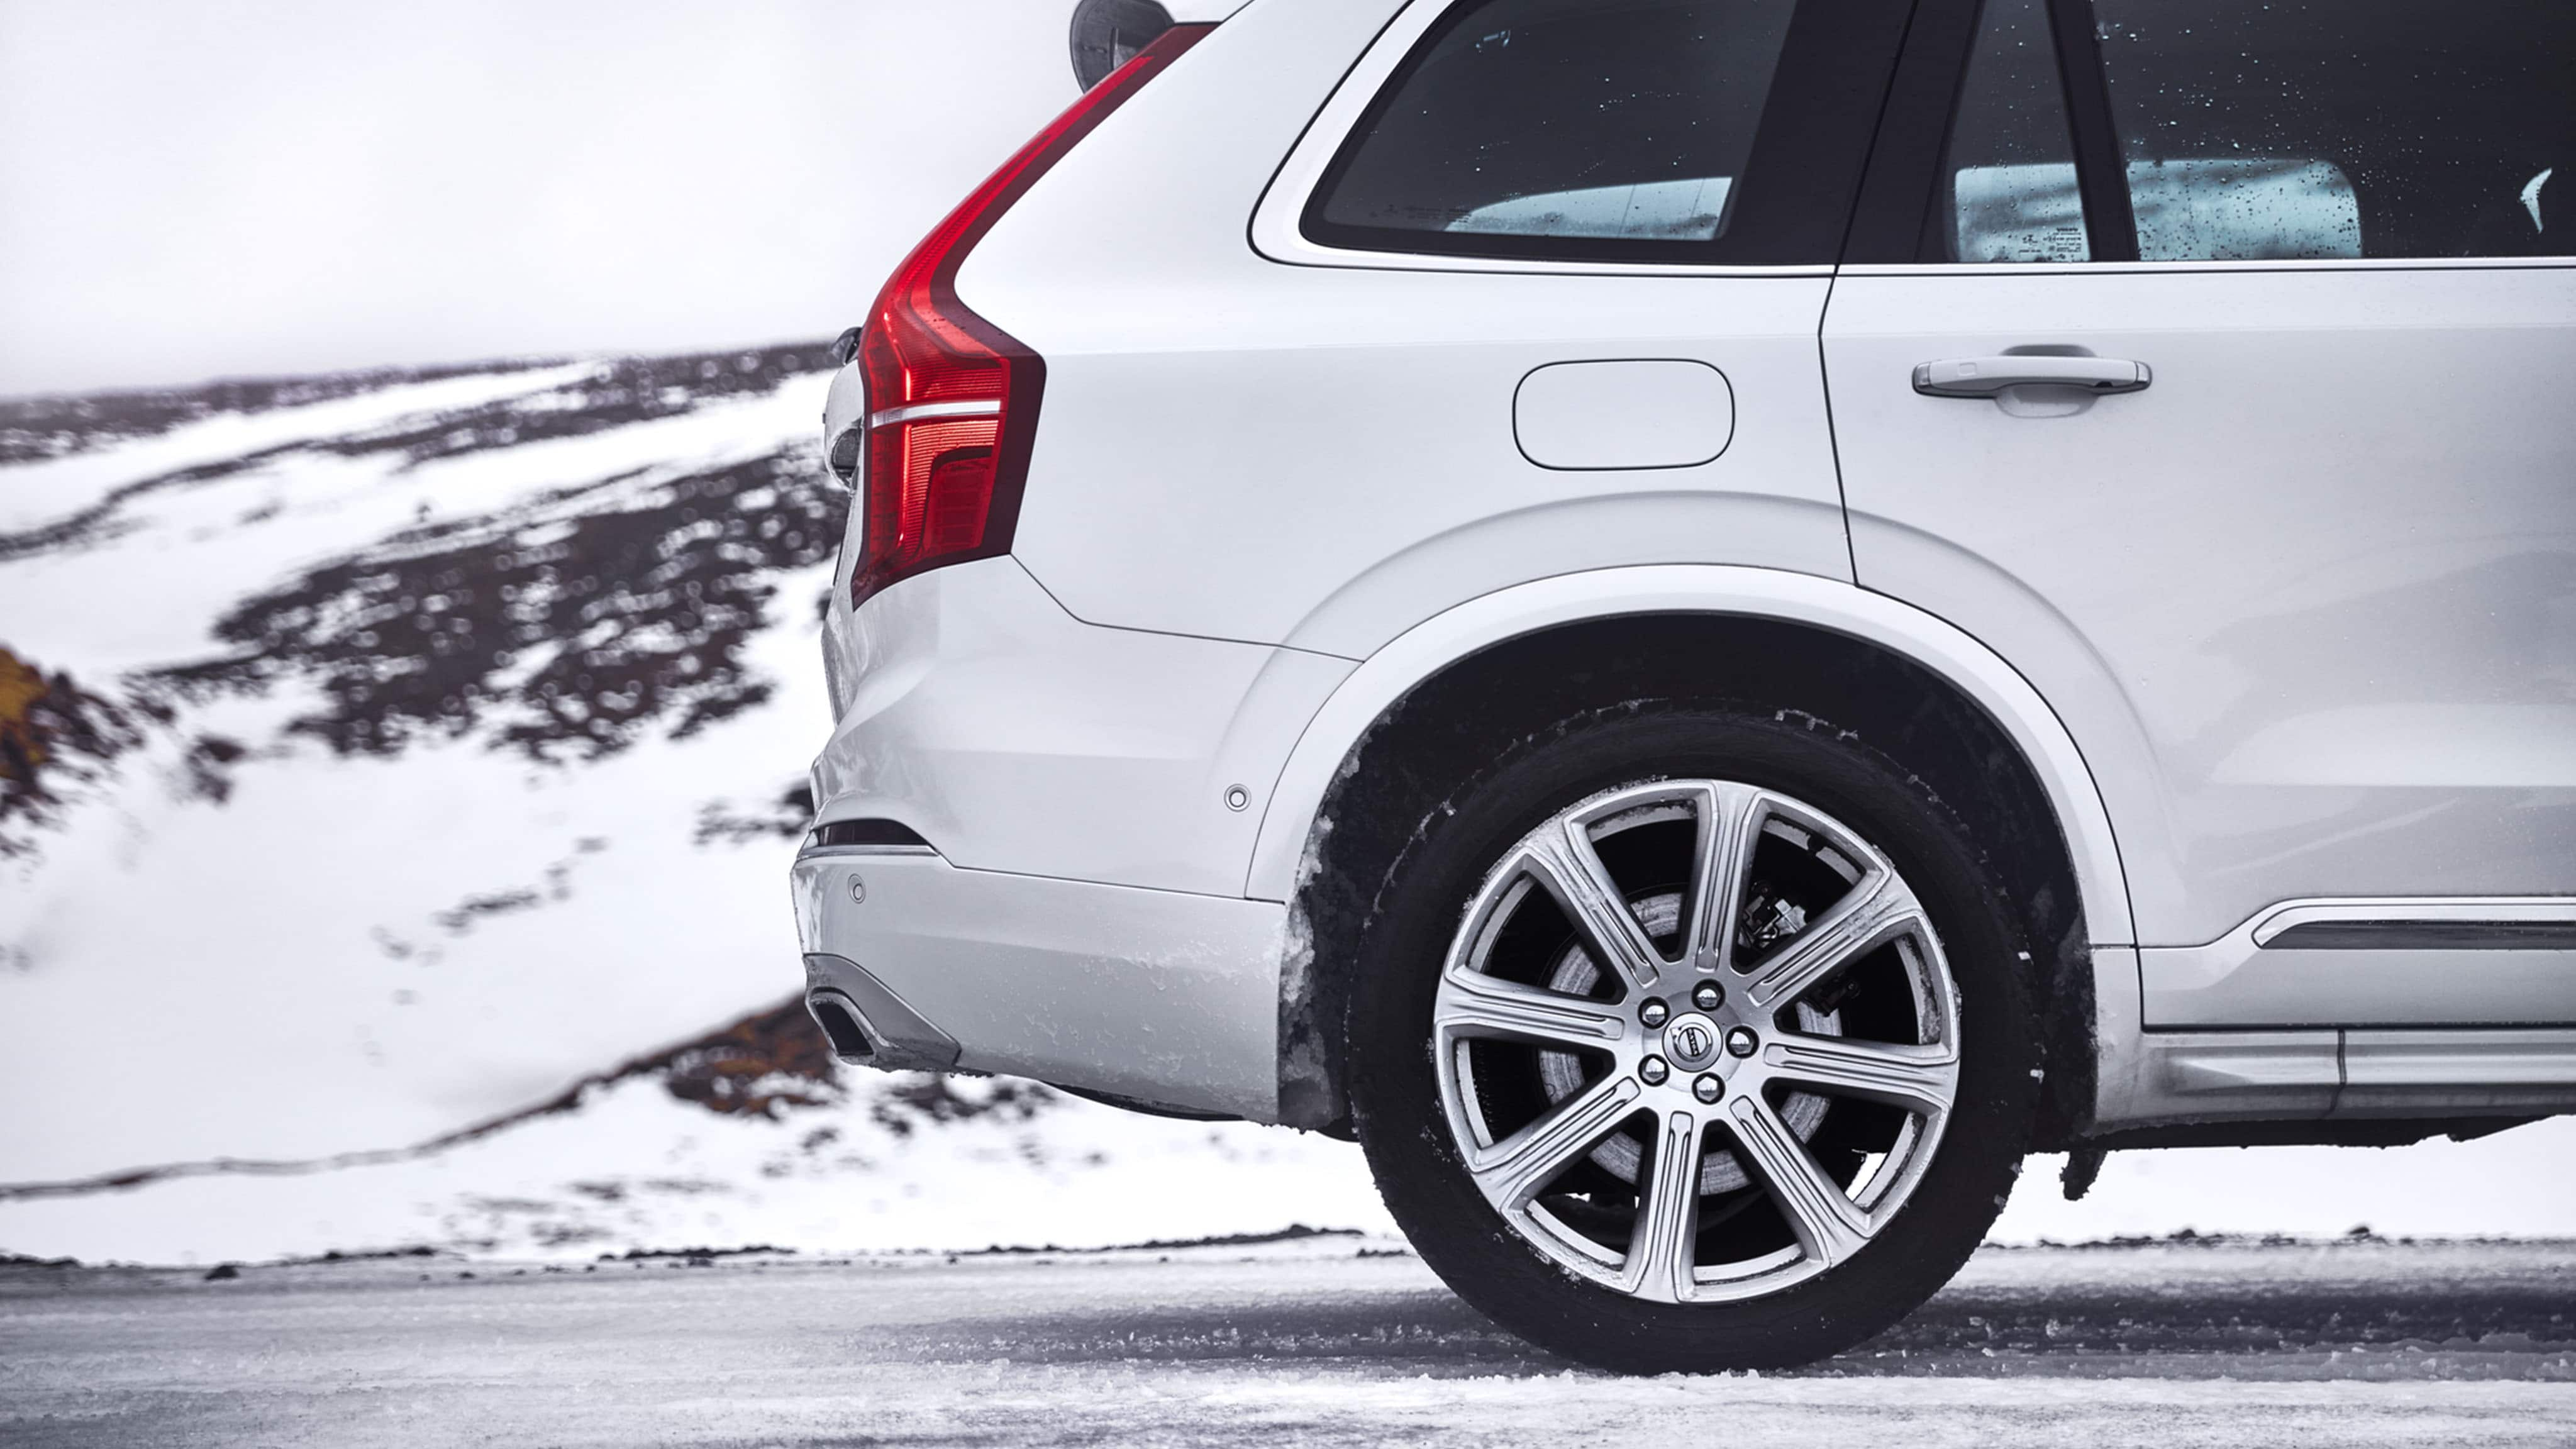 Winter new car specials and cash allowances at Culver City Volvo Cars